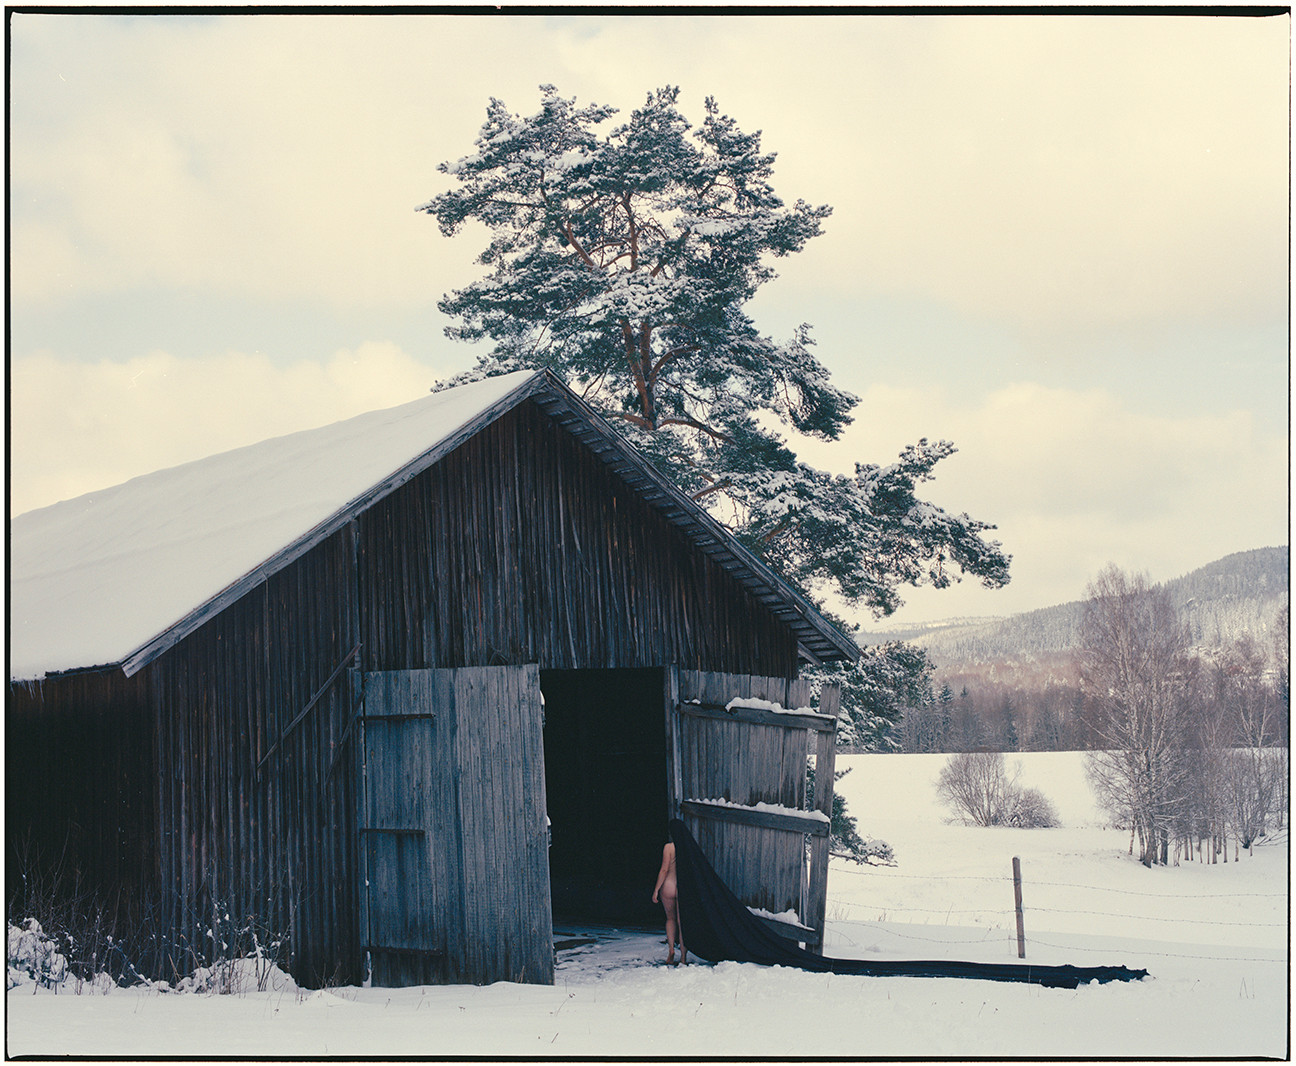 Body and the Barn - 4